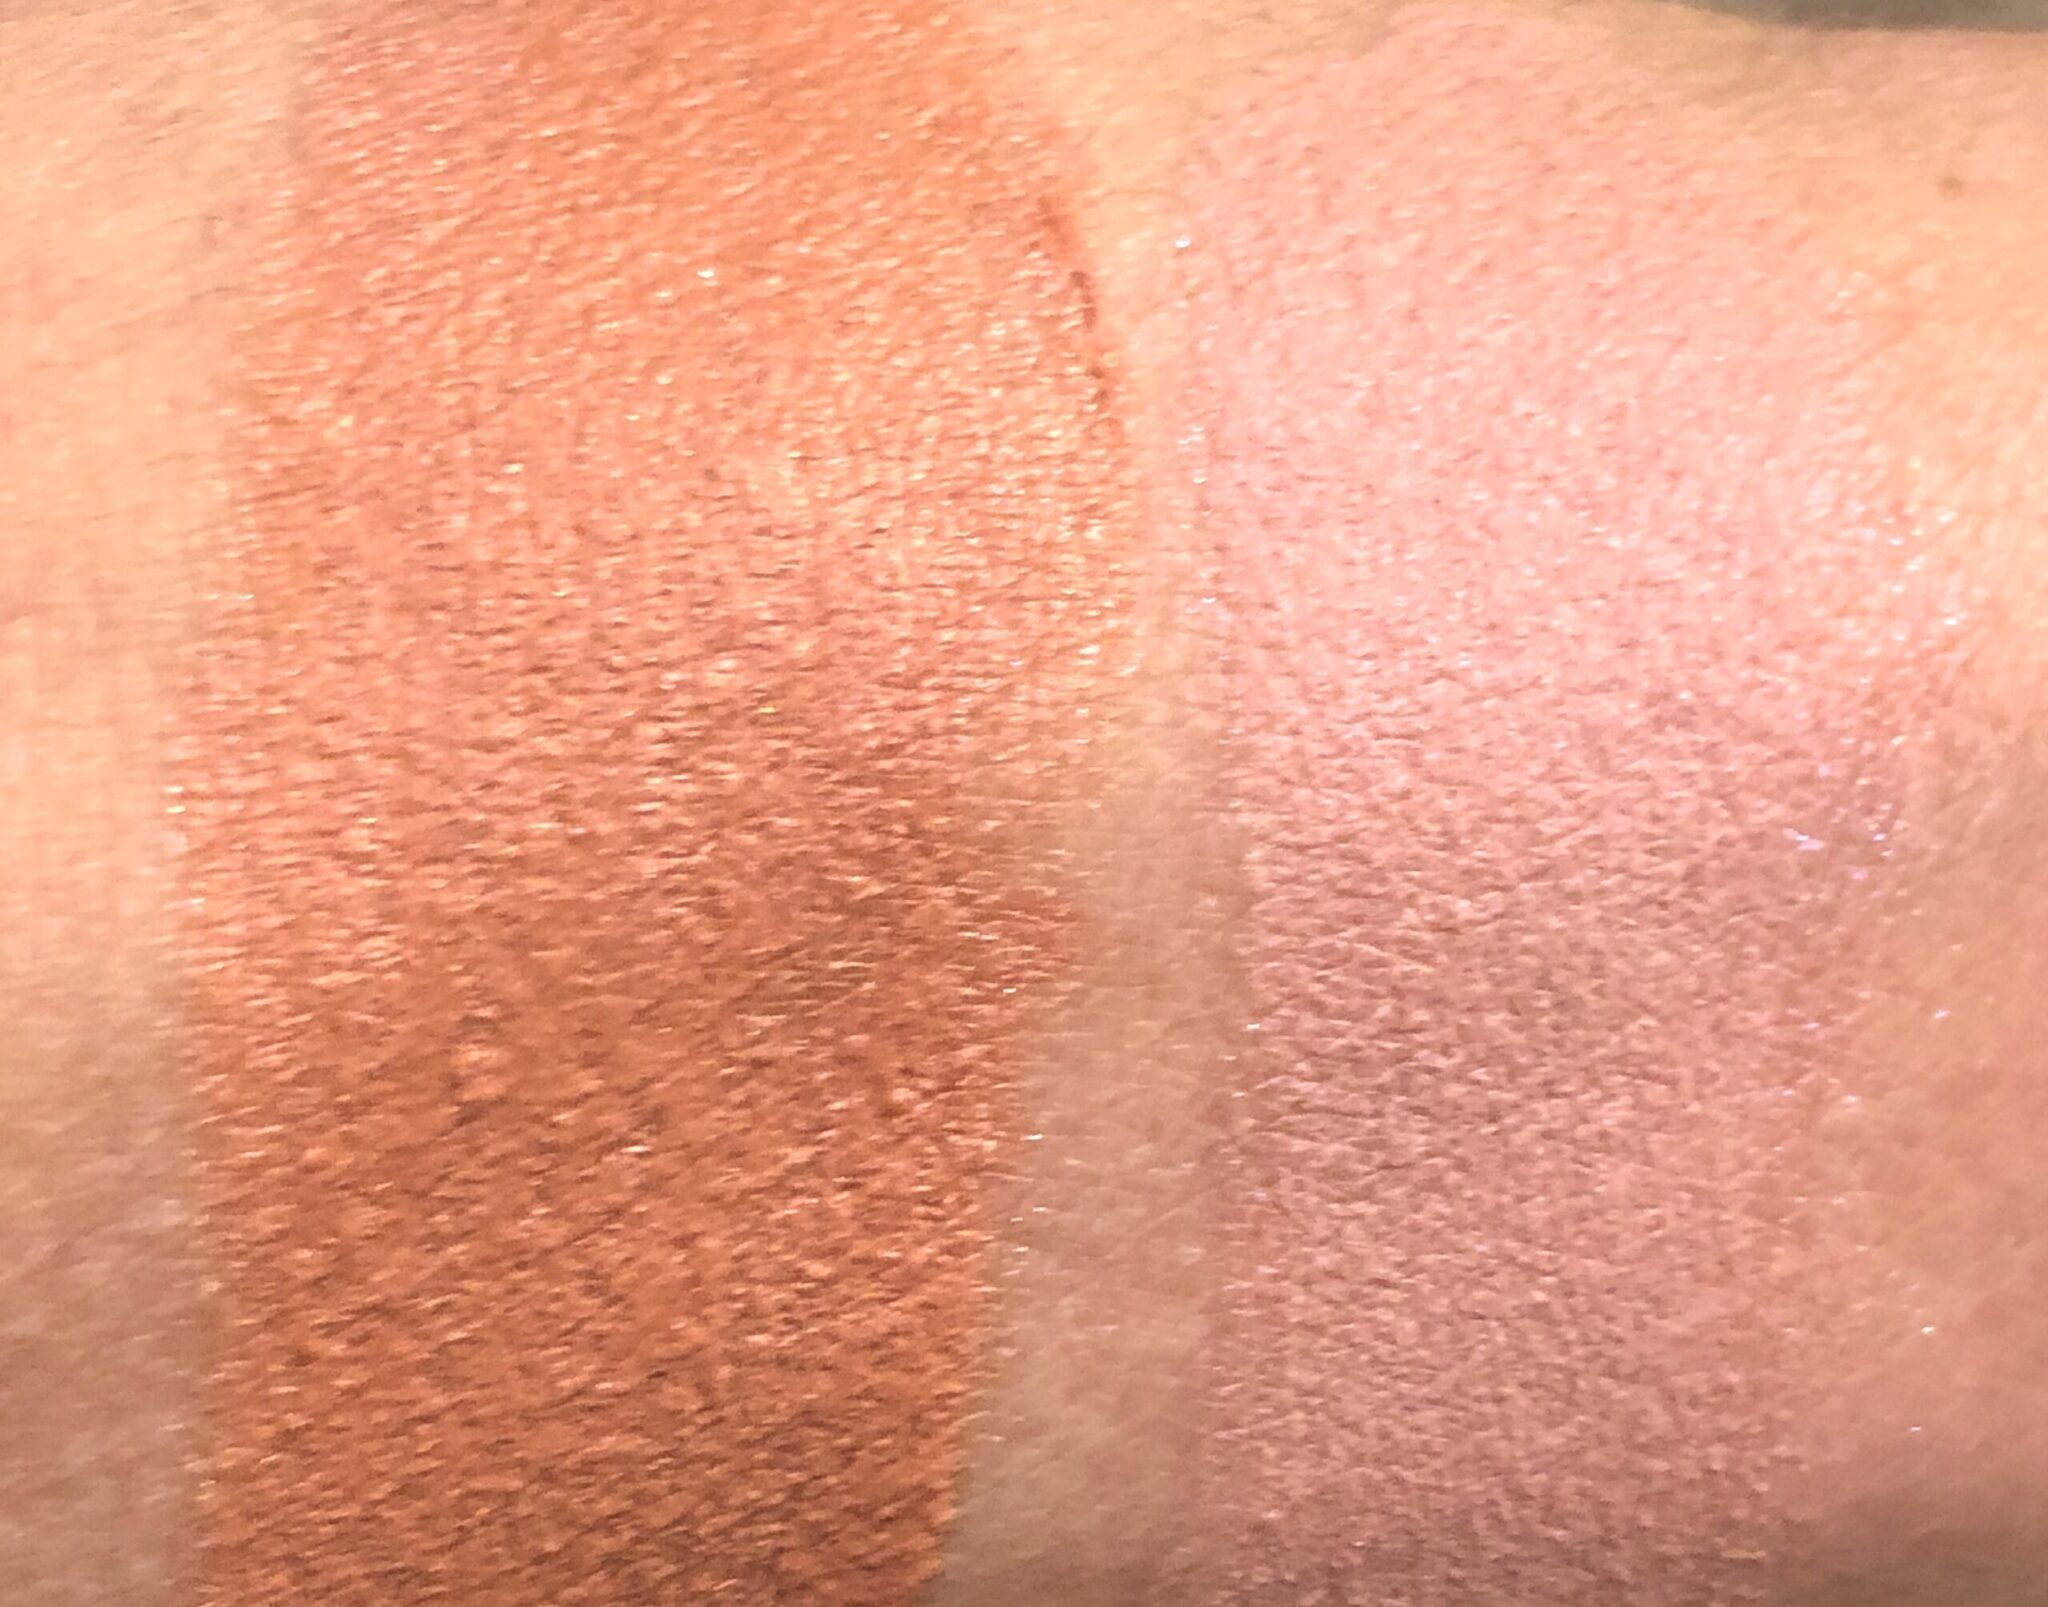 DAYCATION WHIPPED BLUSH SWATCHES, ON THE LEFT IS MELON MOJITO,ON THE RIGHT IS WATERMELON MARG